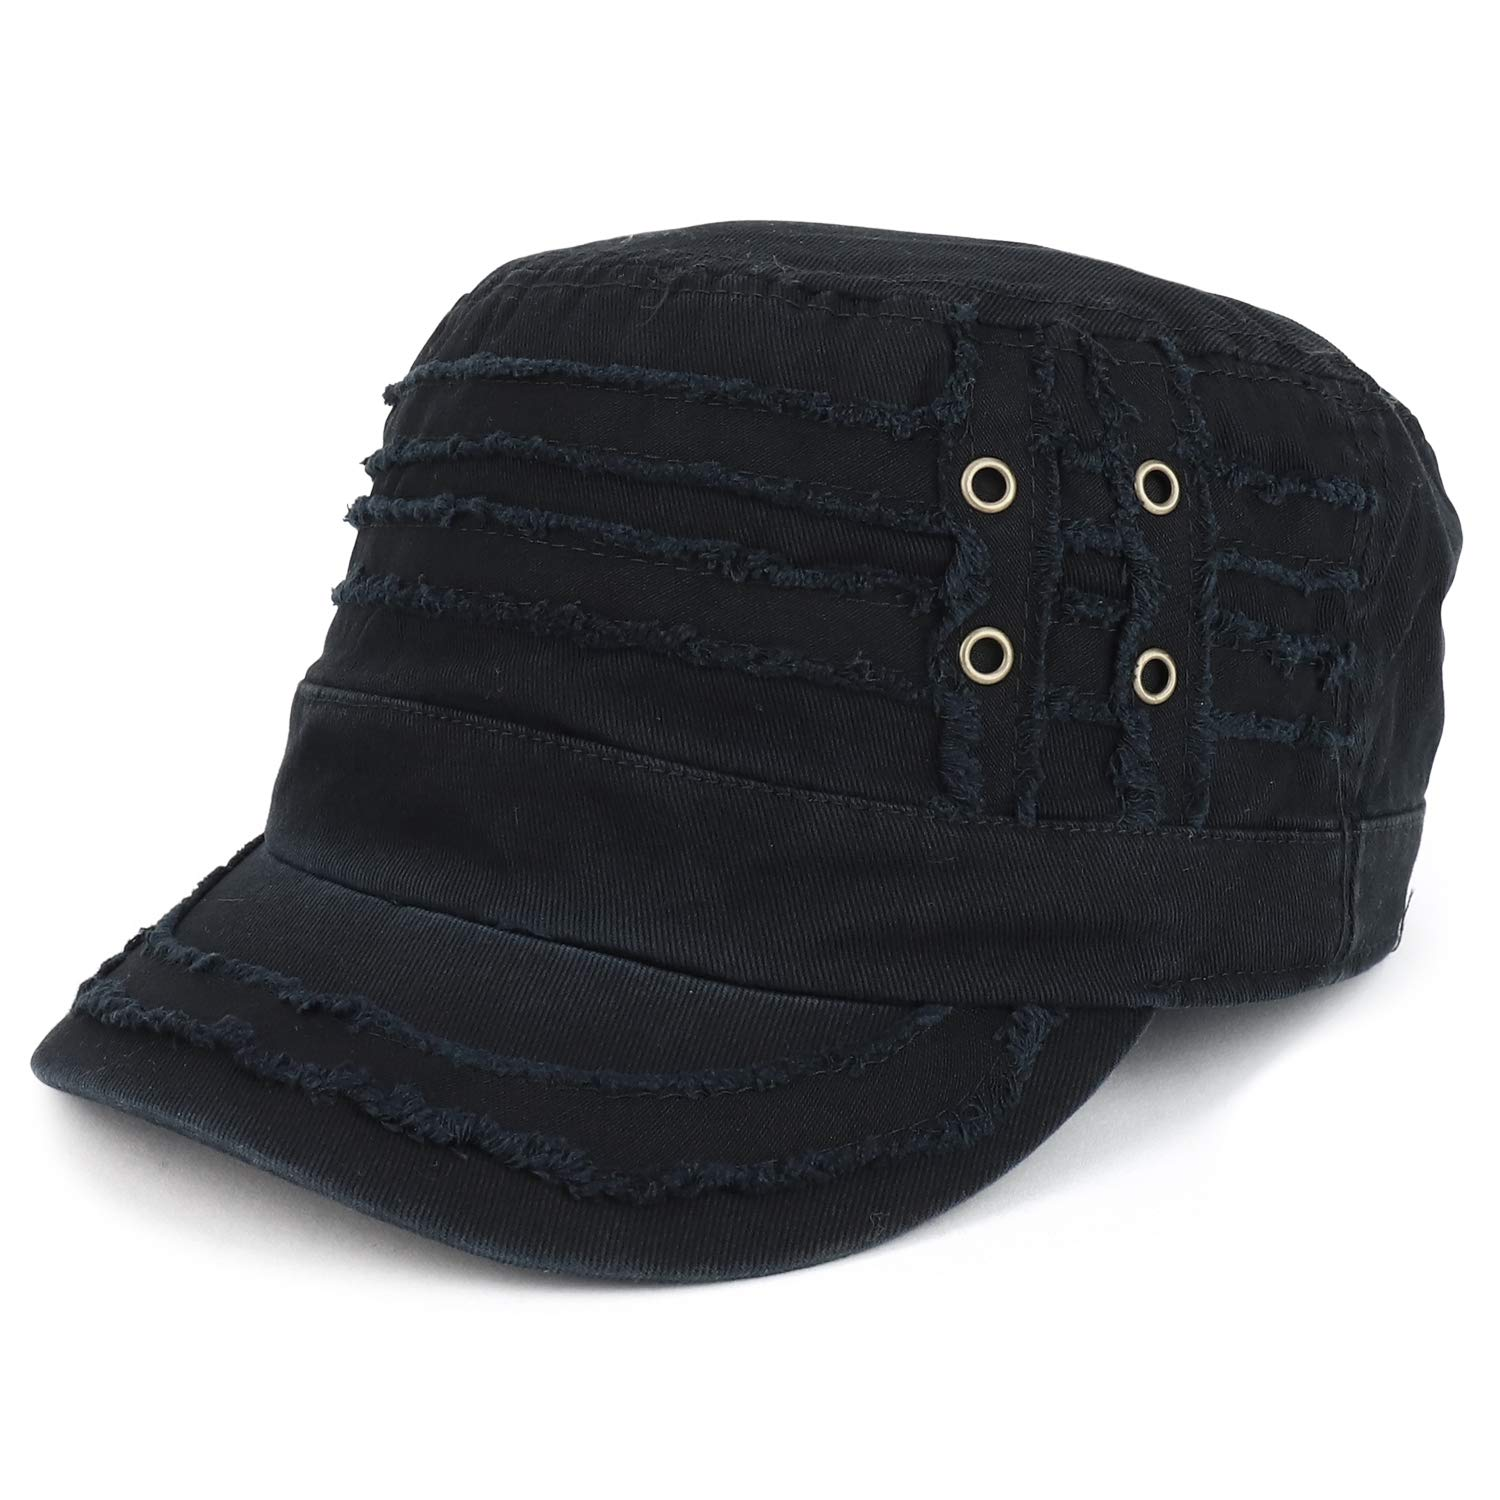 Trendy Apparel Shop Distressed Elastic Fit Frayed Cadet Jeep Style Army Cap - Black